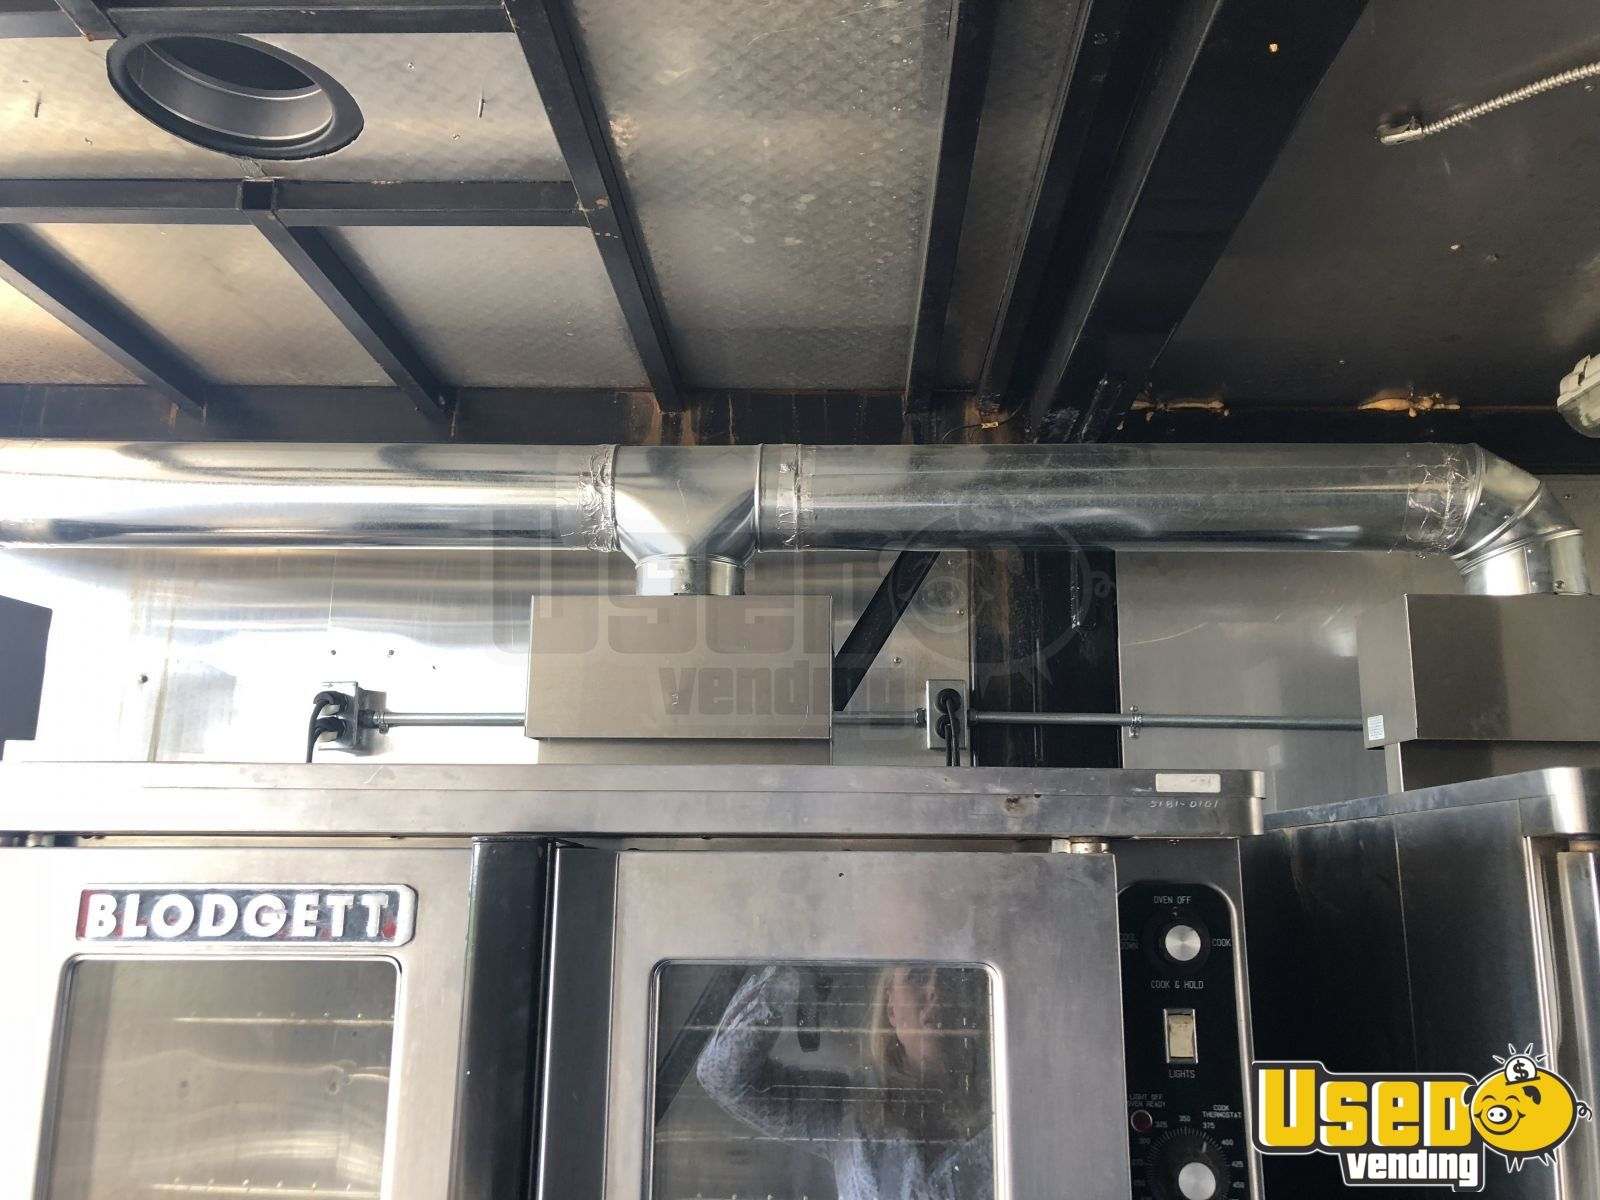 1999, 2008 Kentucky All-purpose Food Trailer Upright Freezer Oklahoma Diesel Engine for Sale - 10